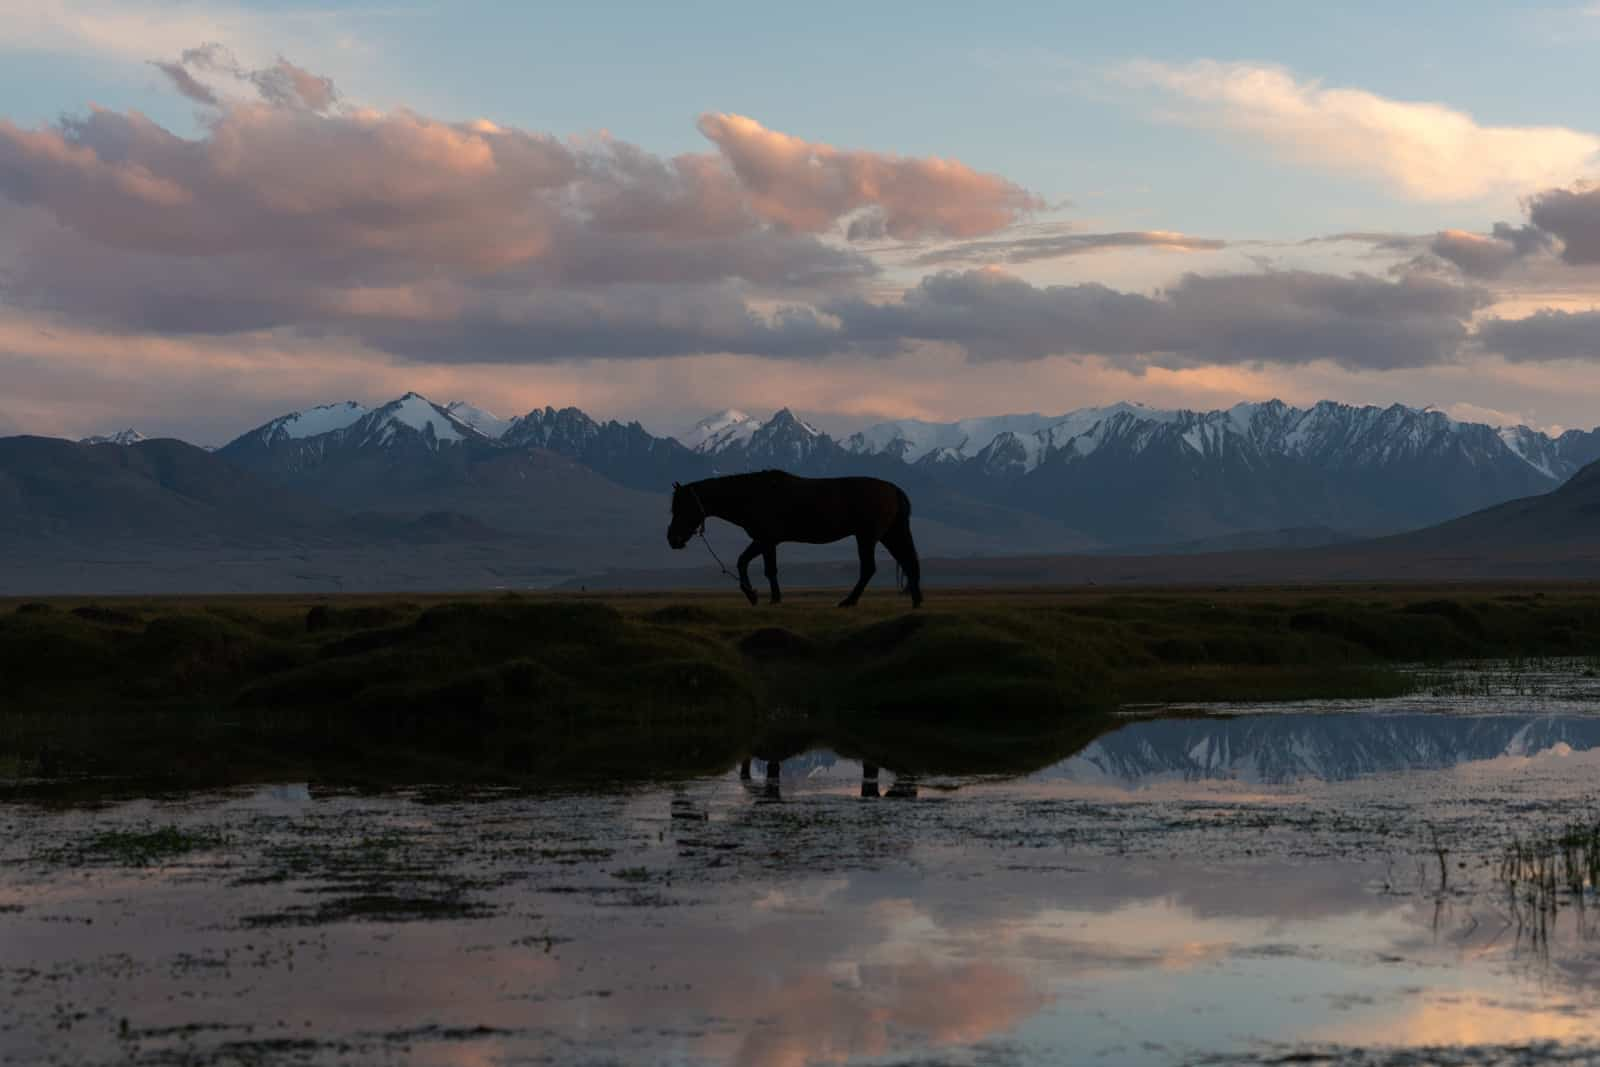 Horse in Shaimak at sunset